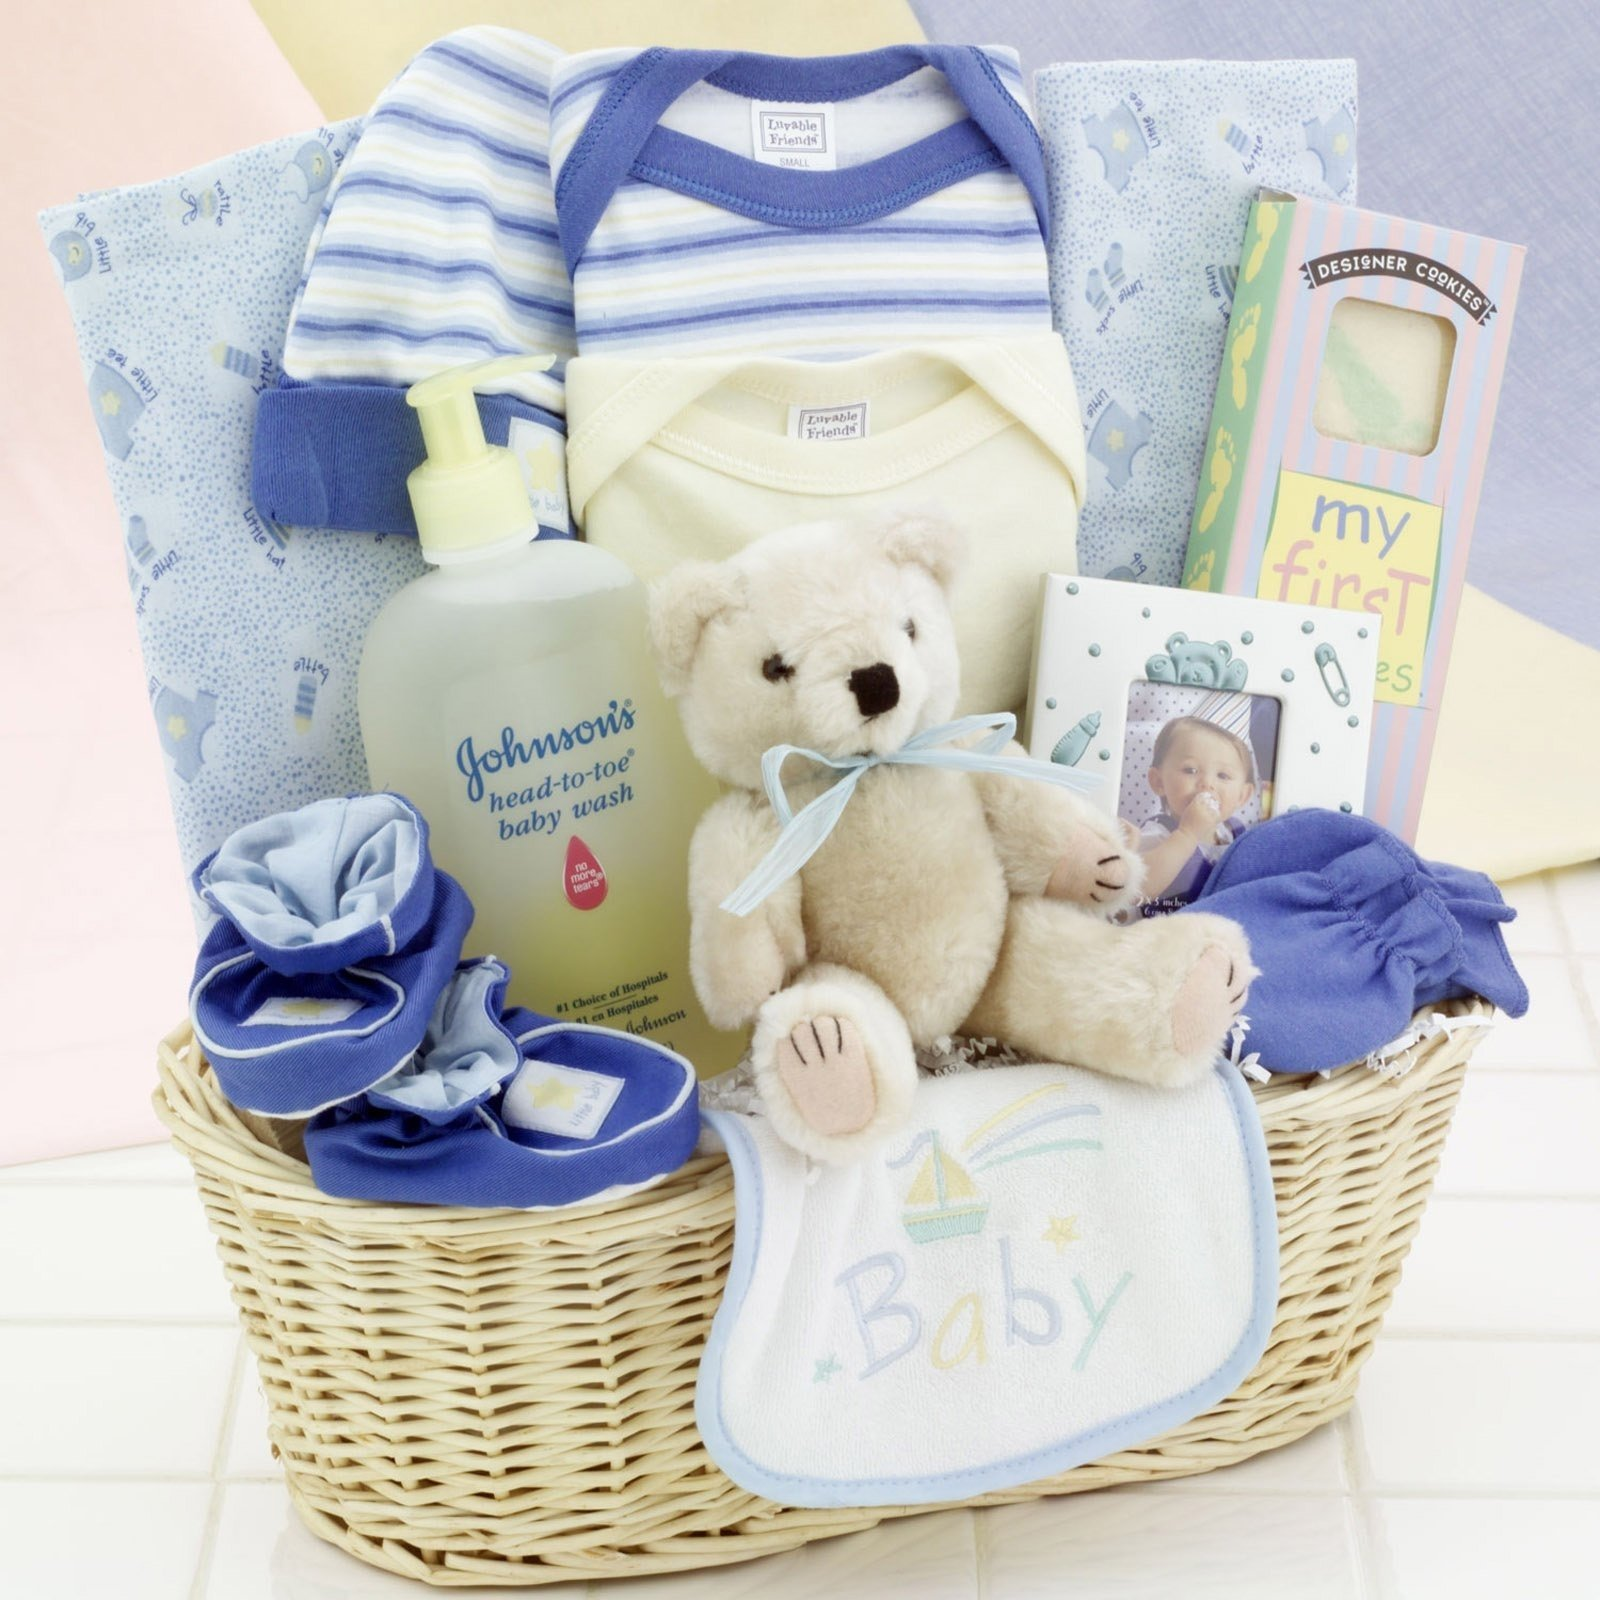 10 Most Popular Baby Boy Gift Basket Ideas baby shower gift baskets for dad new arrival baby boy gift basket 2020